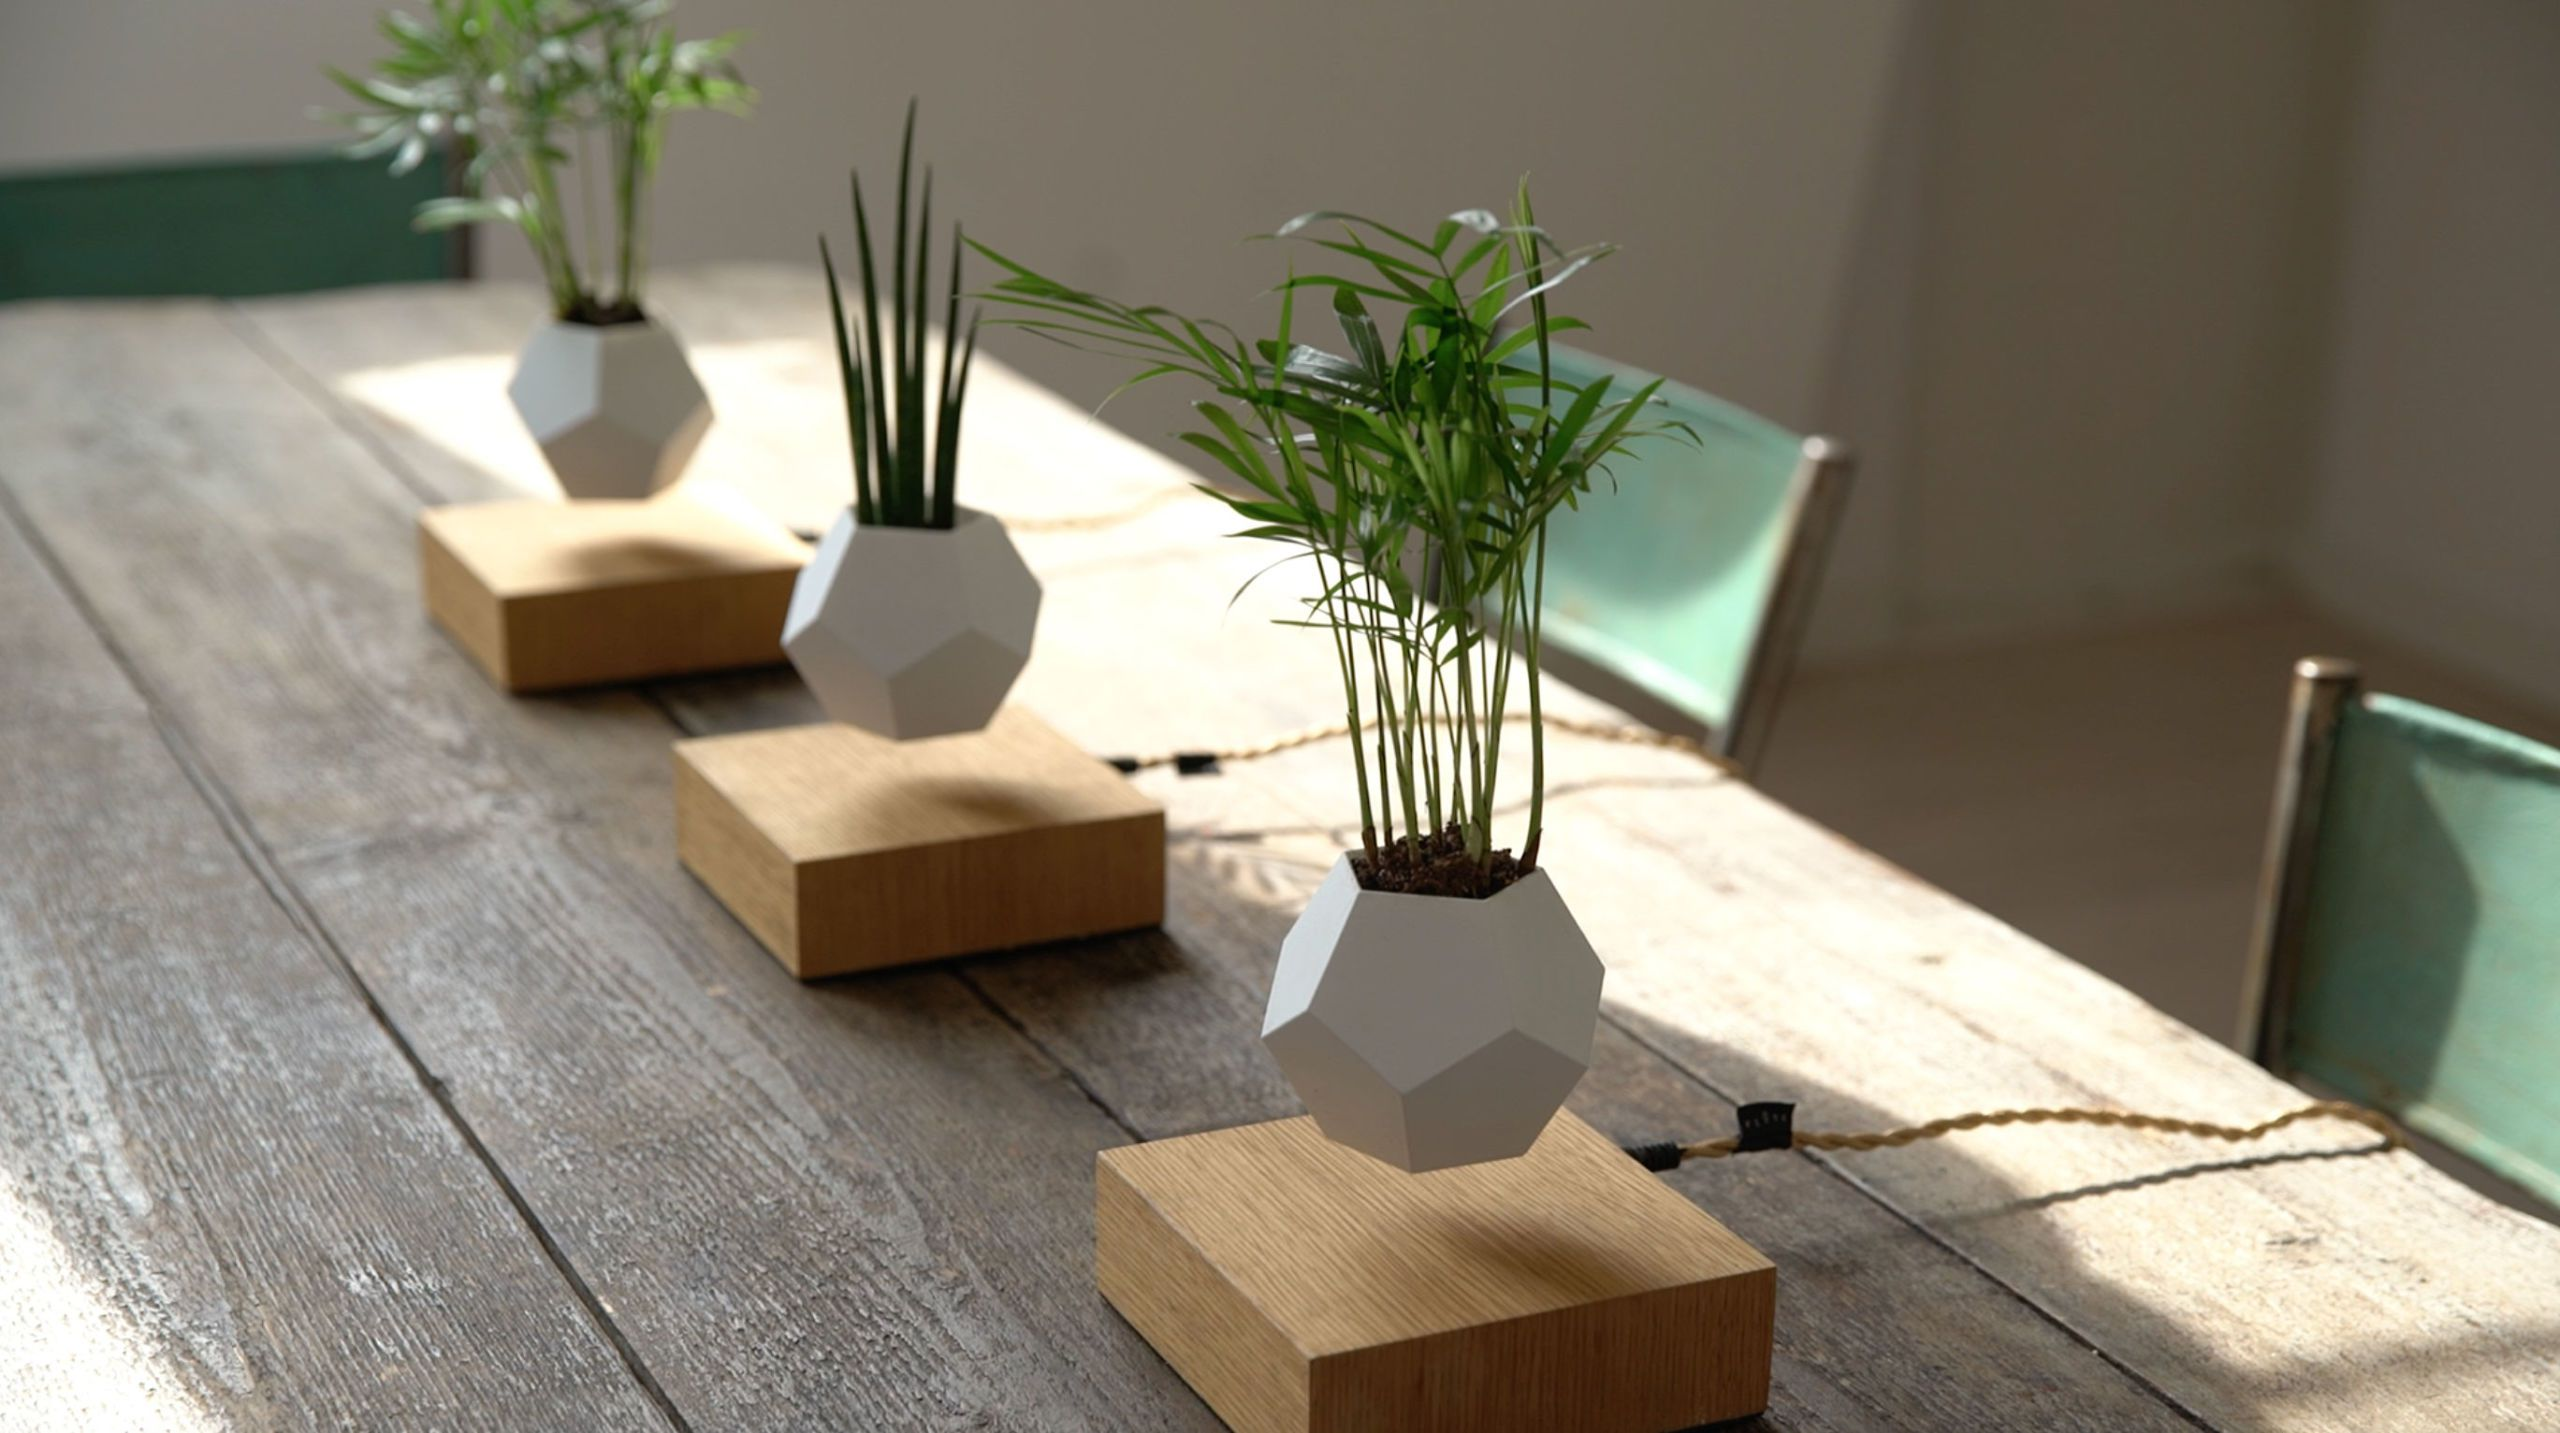 This Decorative Vase Is For Floating Plants - Unique Home Decor